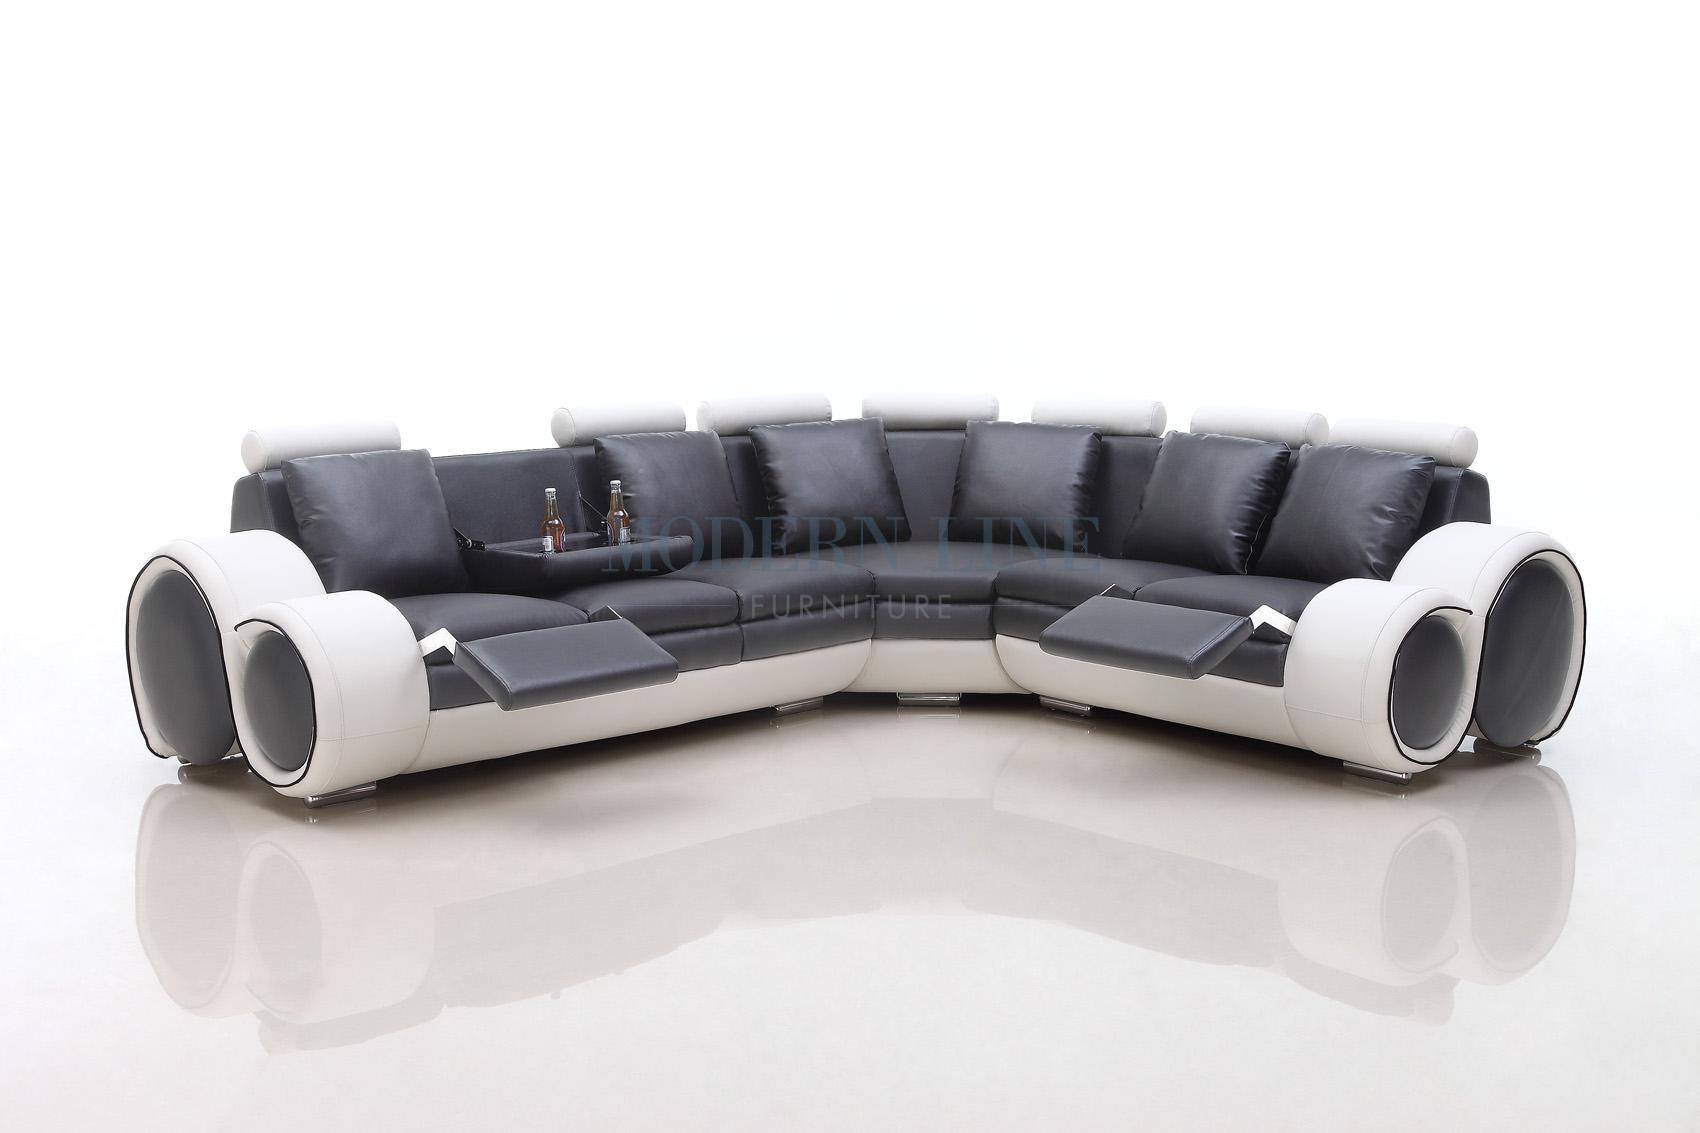 Modern Line Furniture – Commercial Furniture – Custom Made Intended For Sofas With Console (Image 8 of 20)